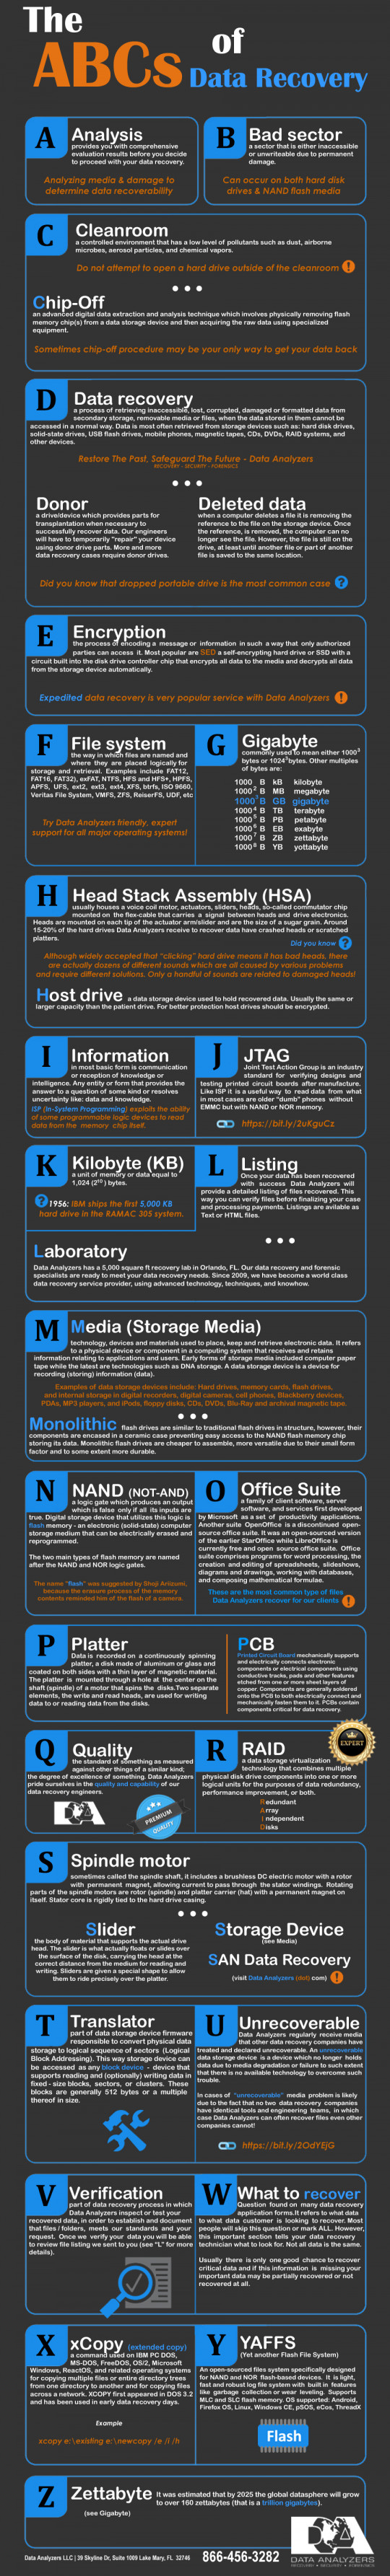 ABCs of Data Recovery